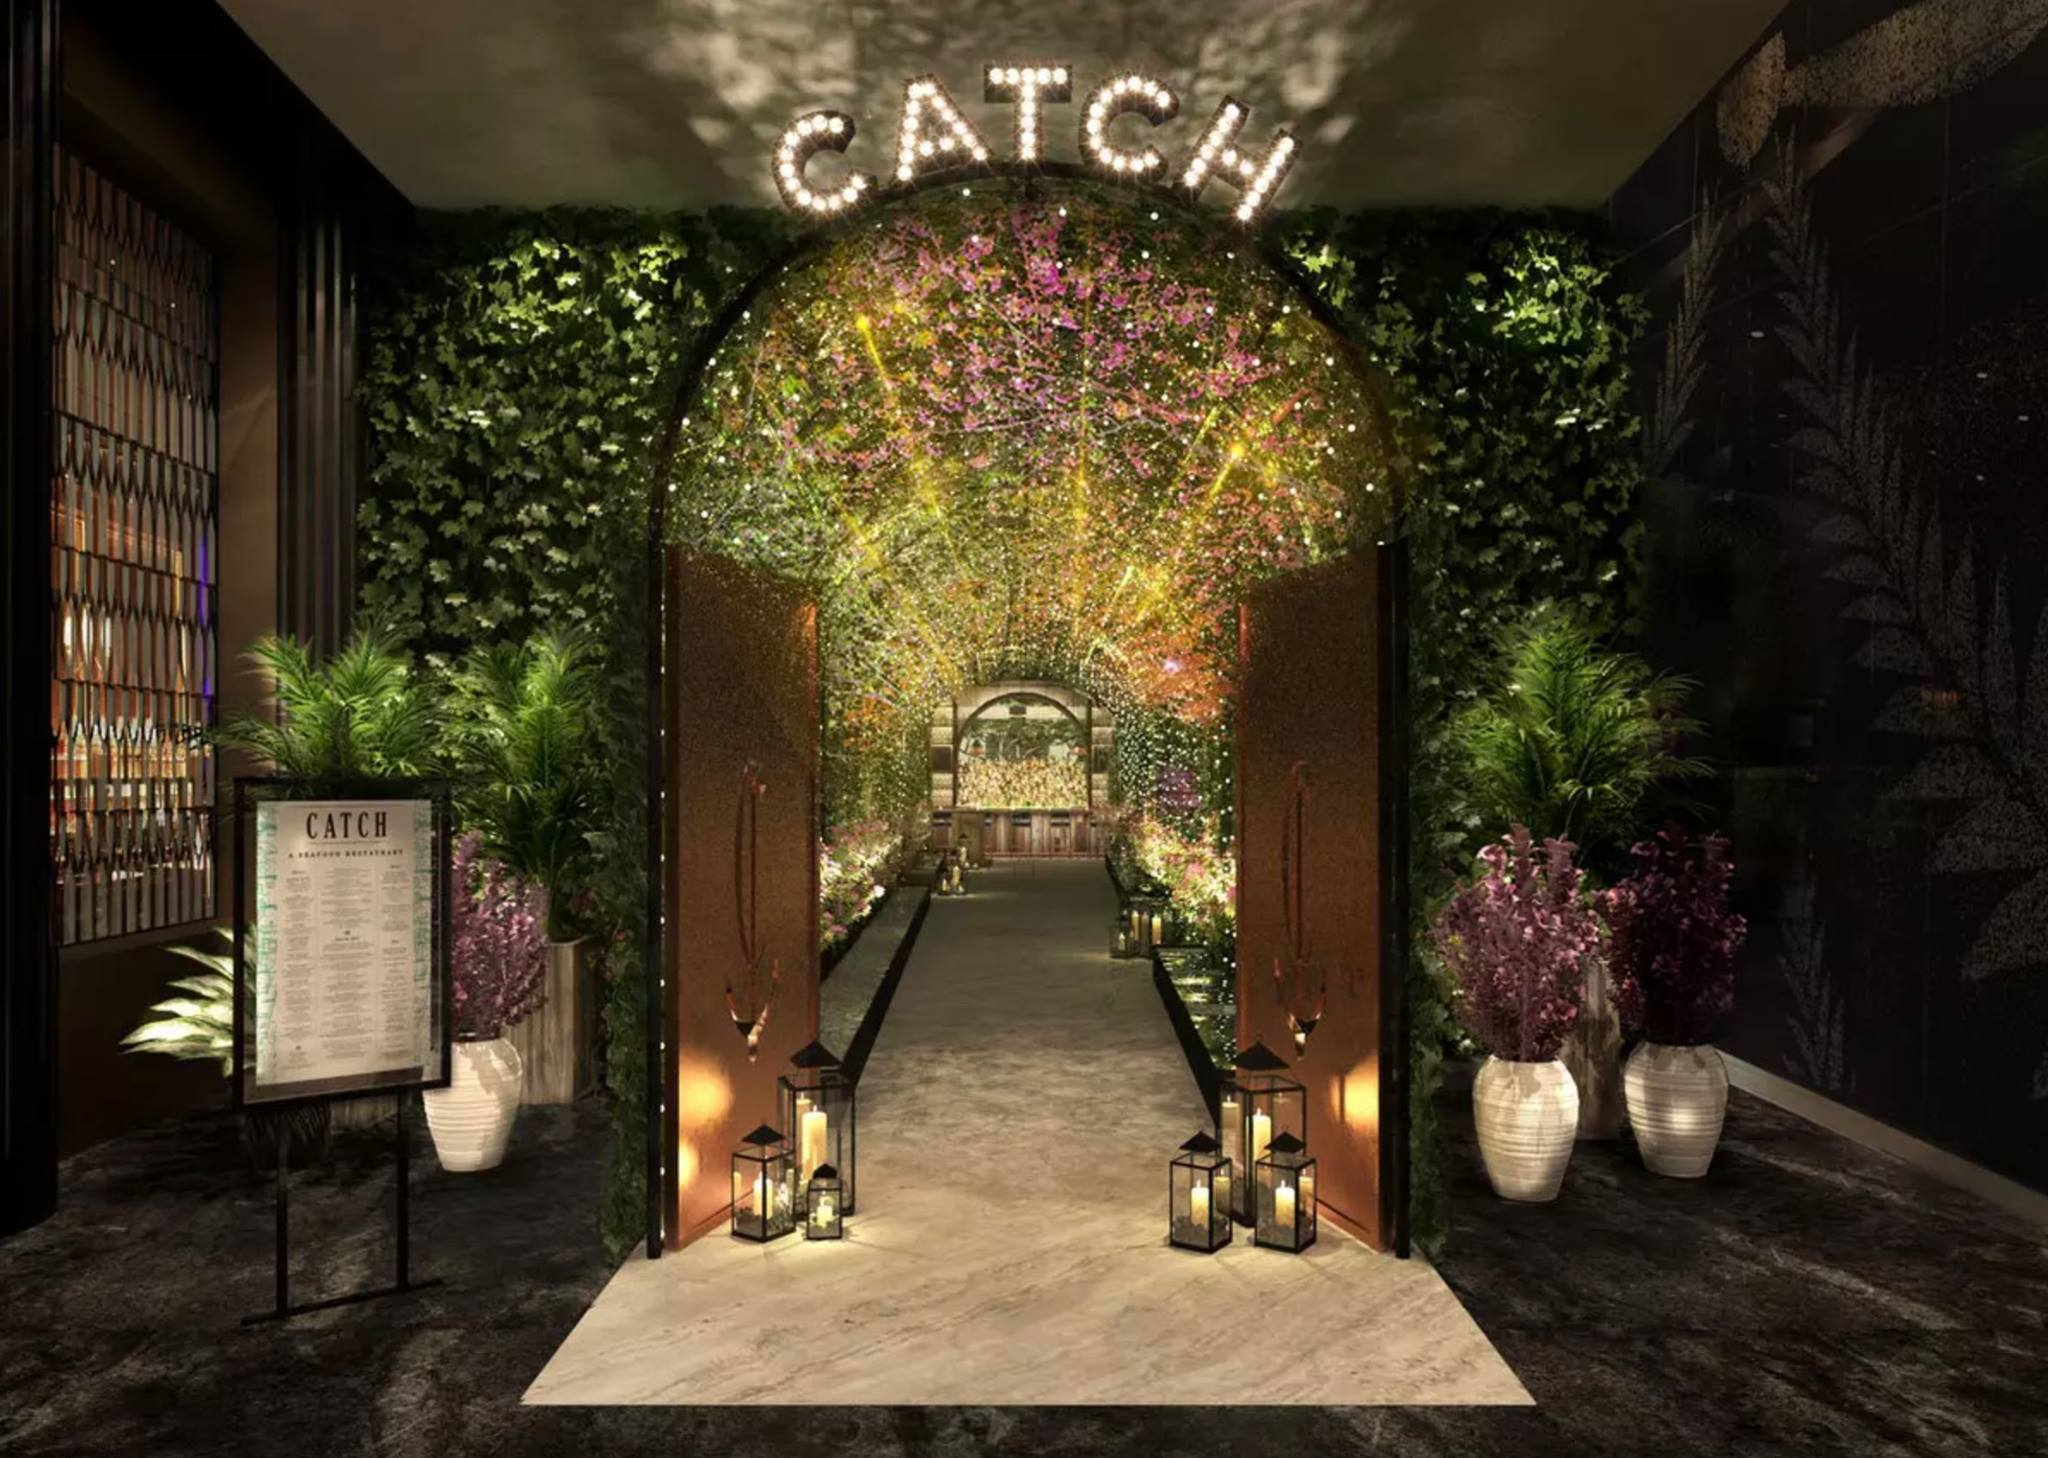 Catch_Entrance